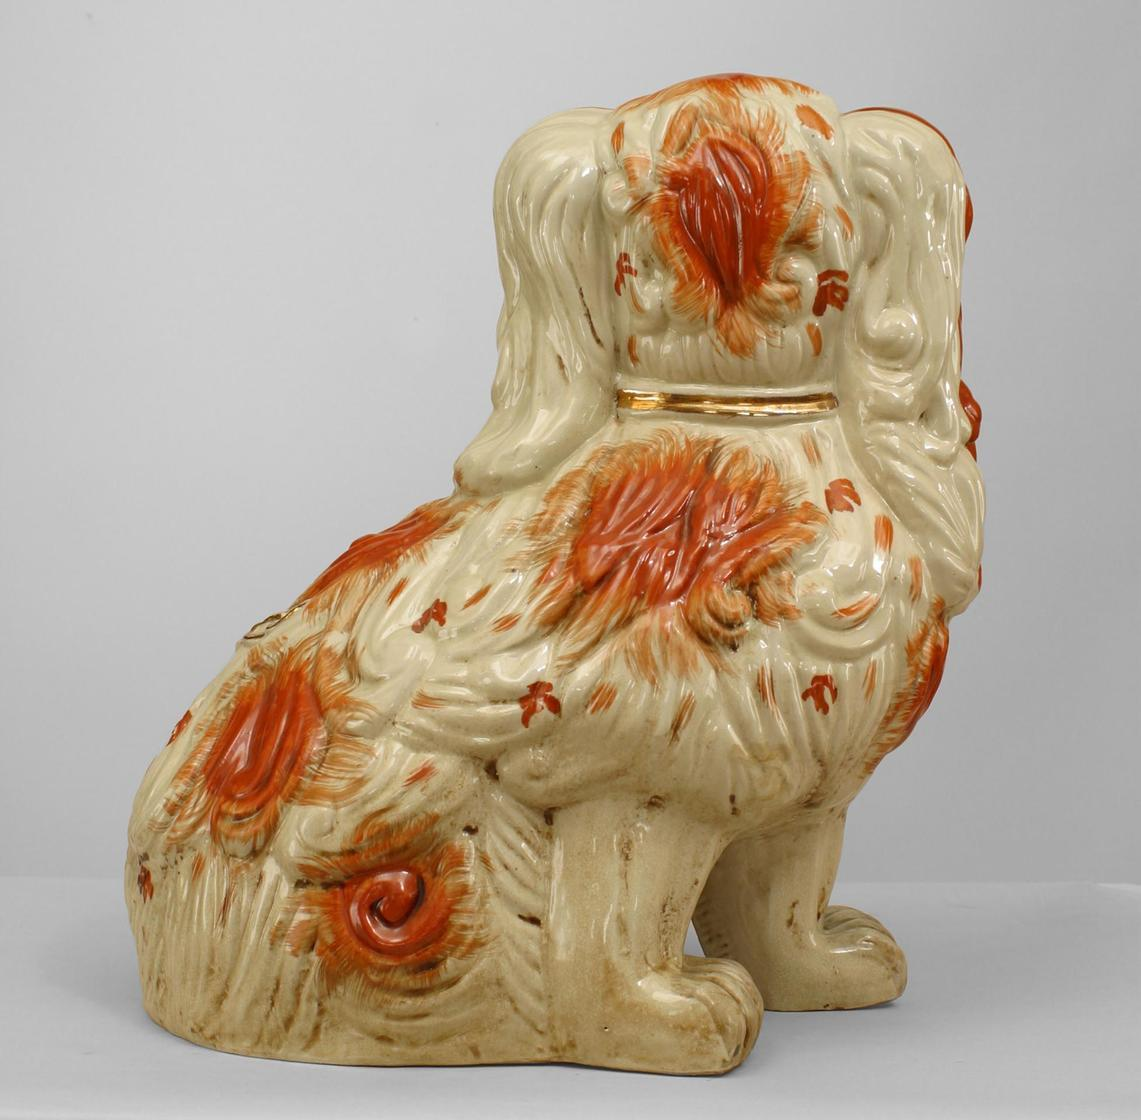 Pair of Early 20th Century English Staffordshire Spaniel Sculptures 5